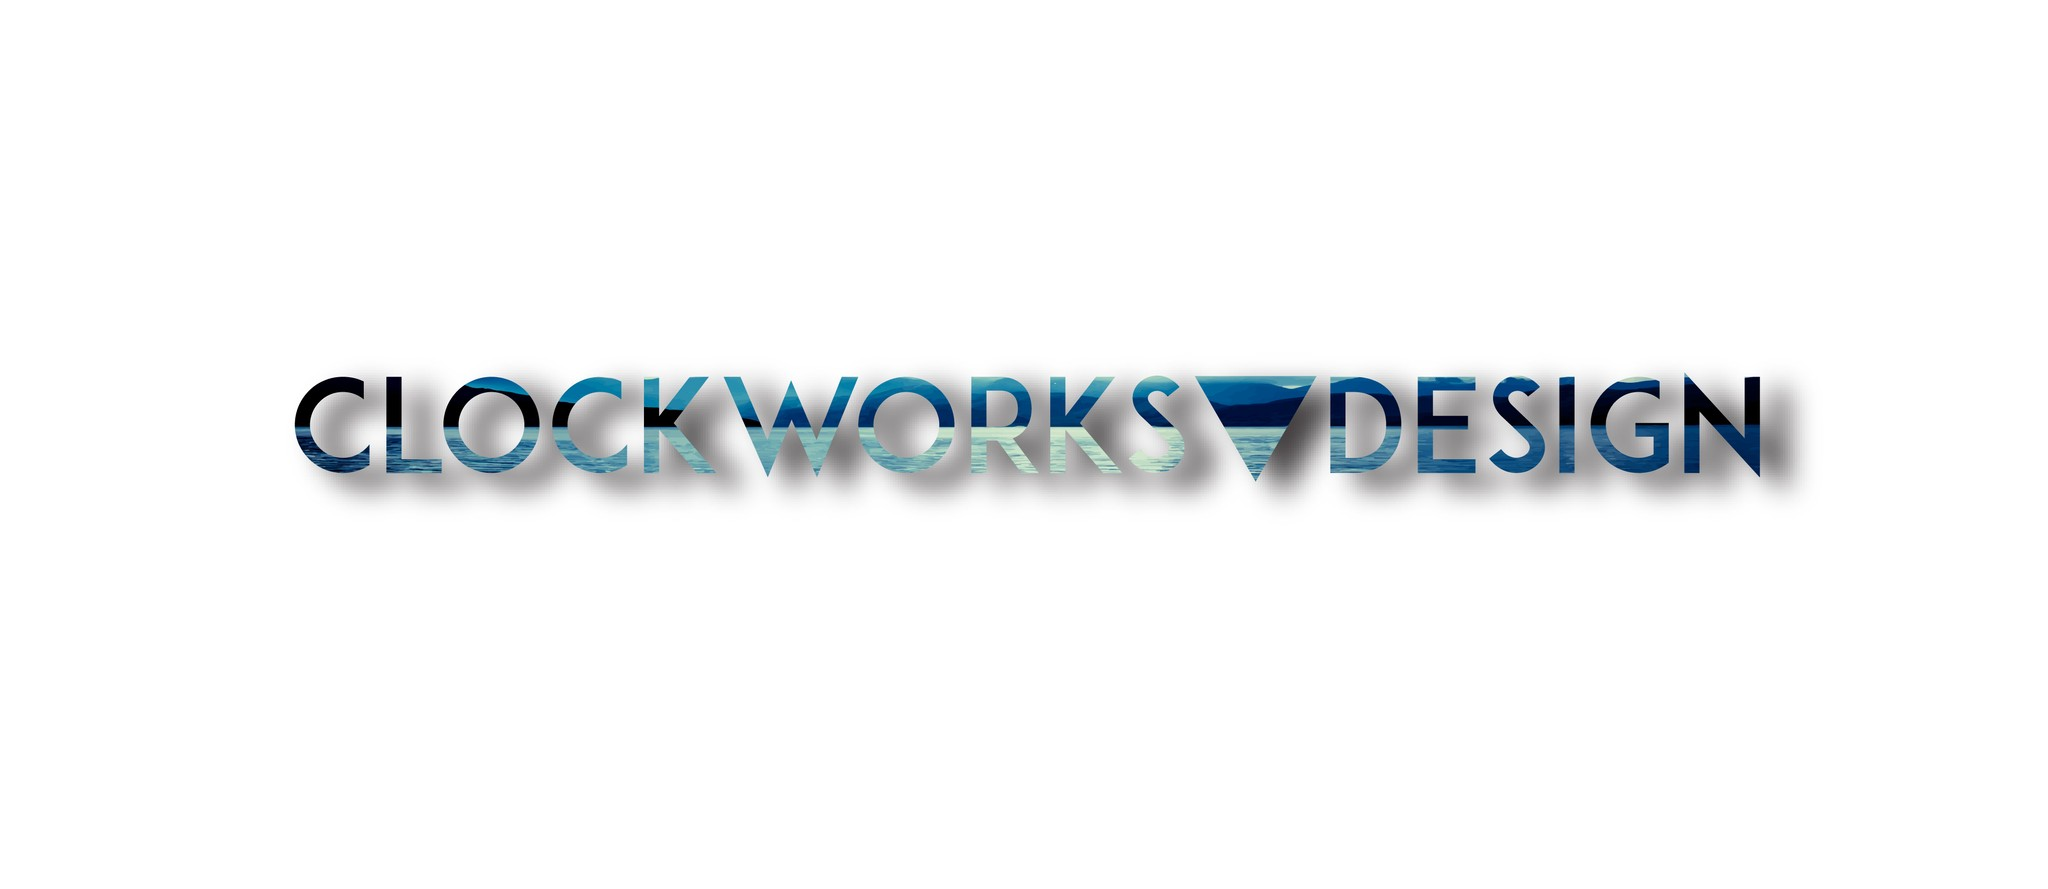 Clock Works Design